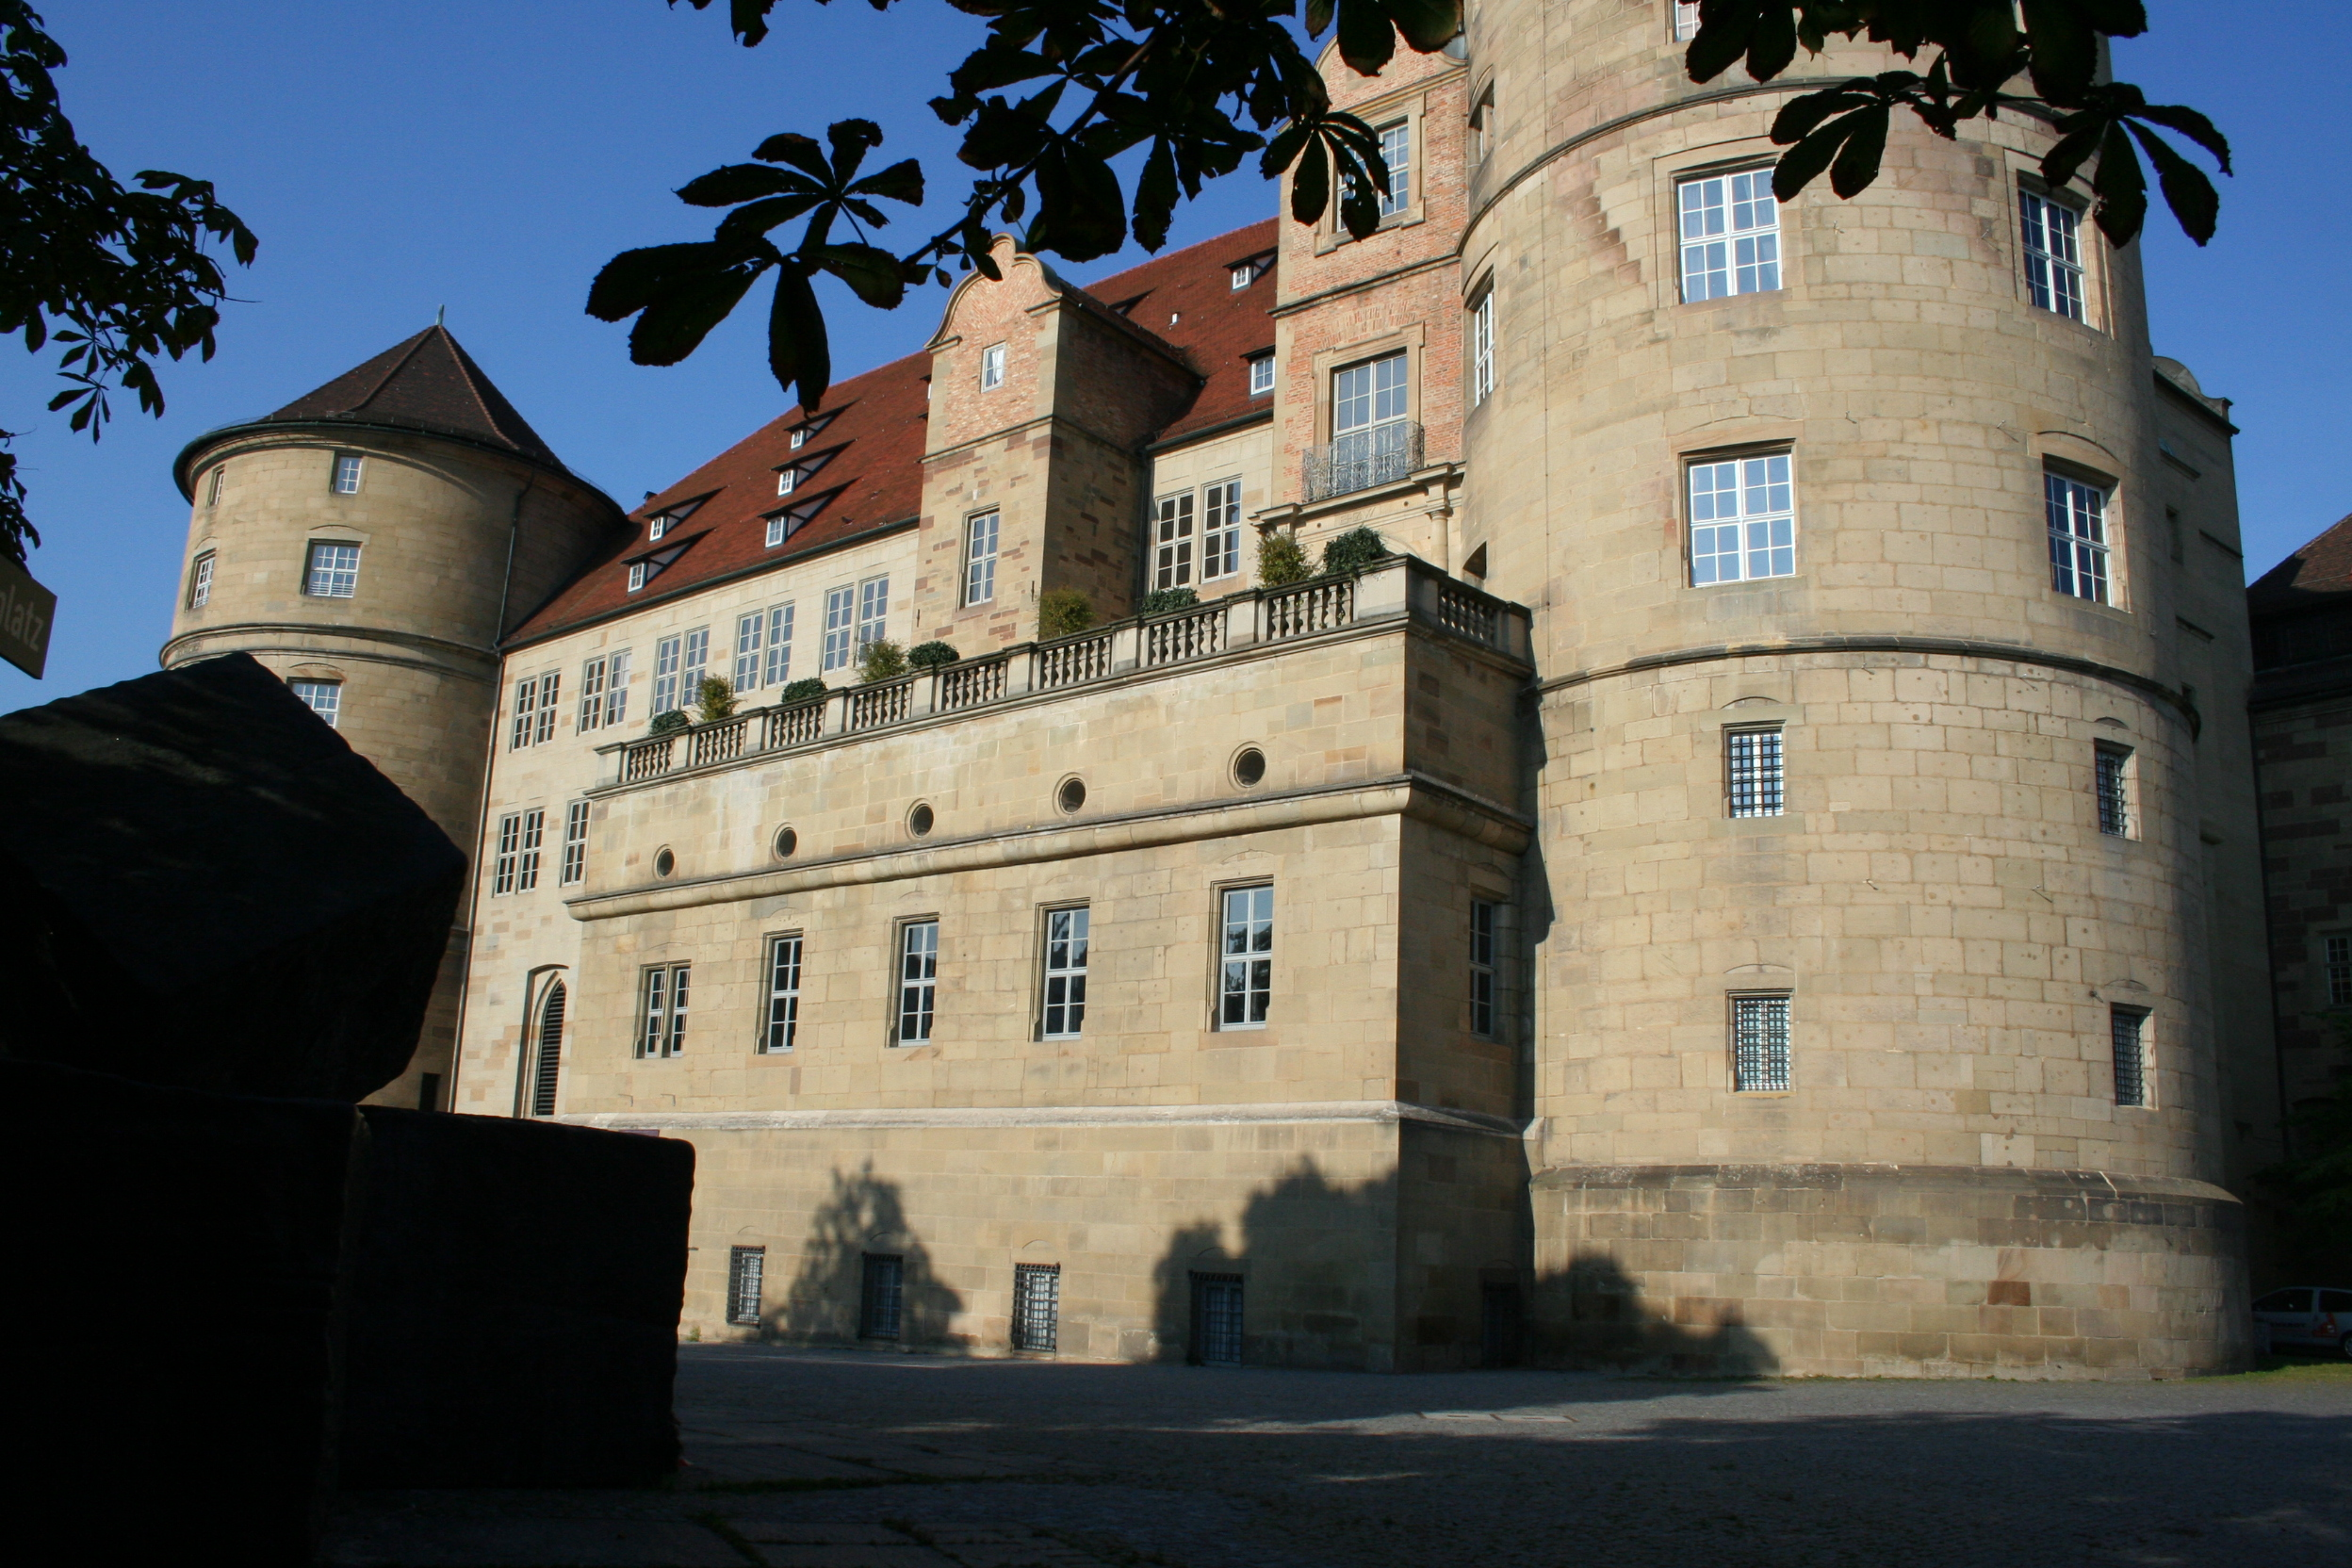 Stuttgart Old Castle